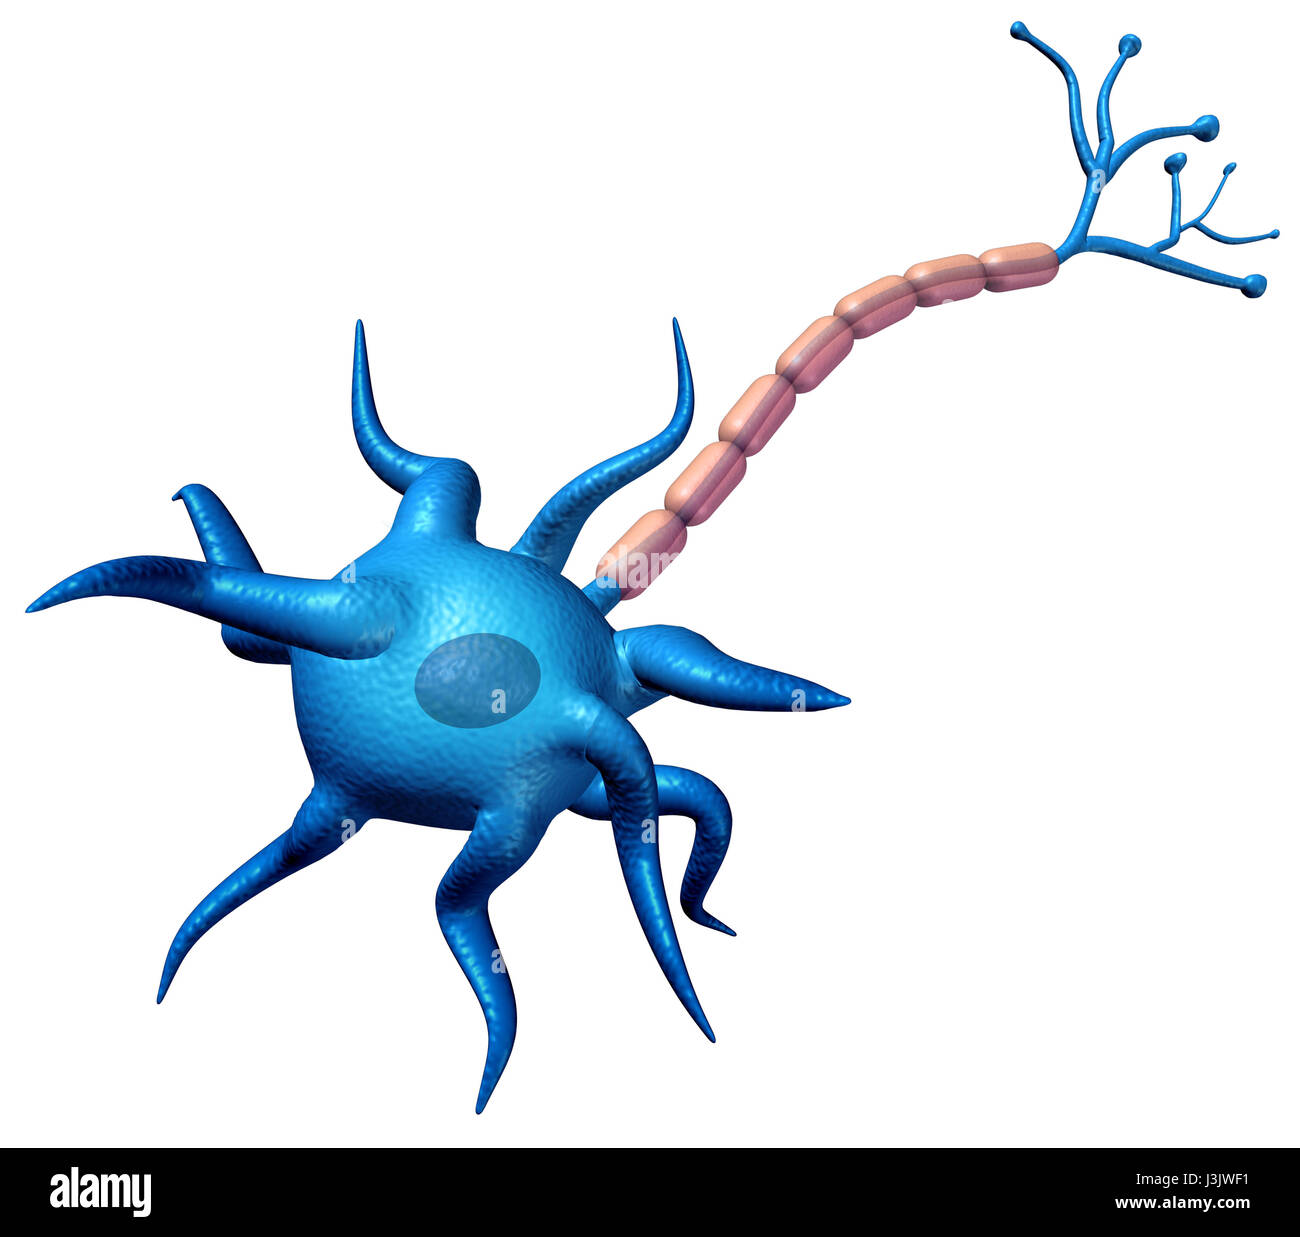 Synapse neuron body anatomy isolated on a white background with axon ...